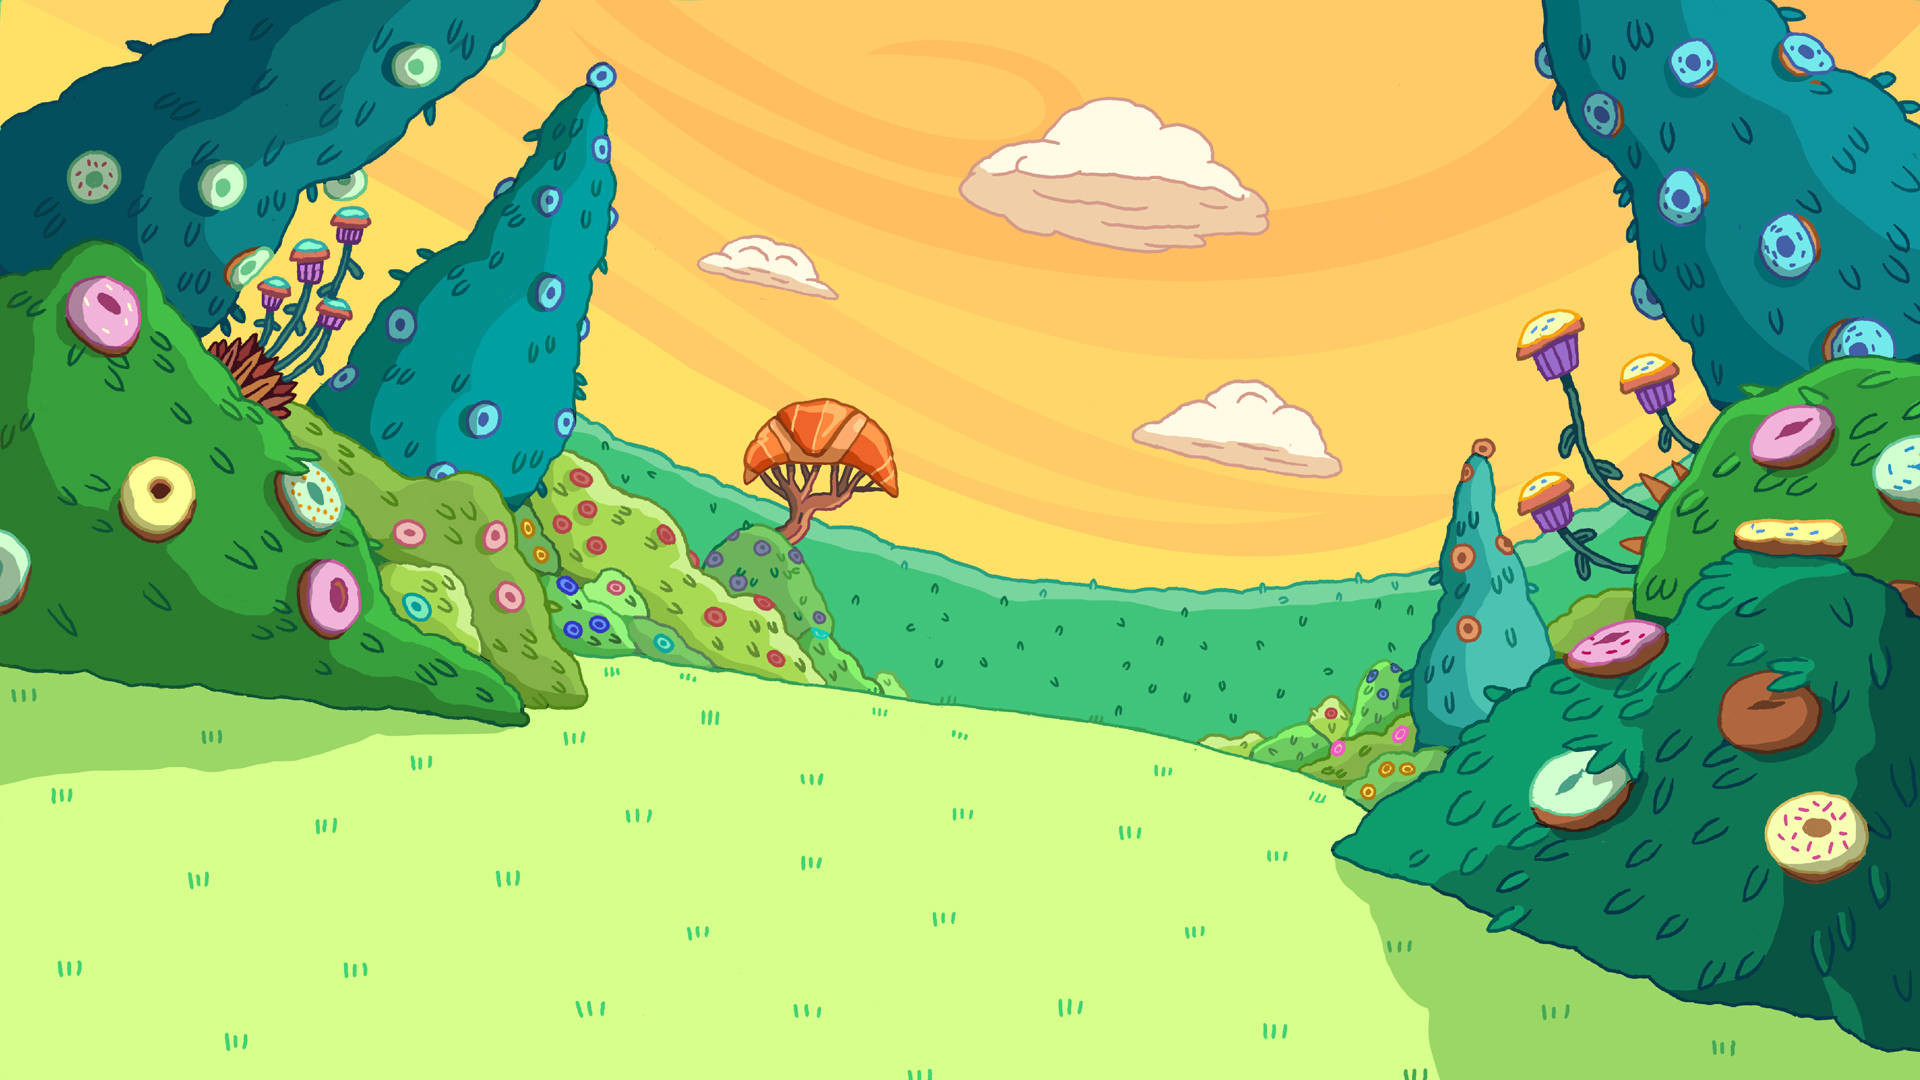 Adventure Time Background Scenery (53+ images)